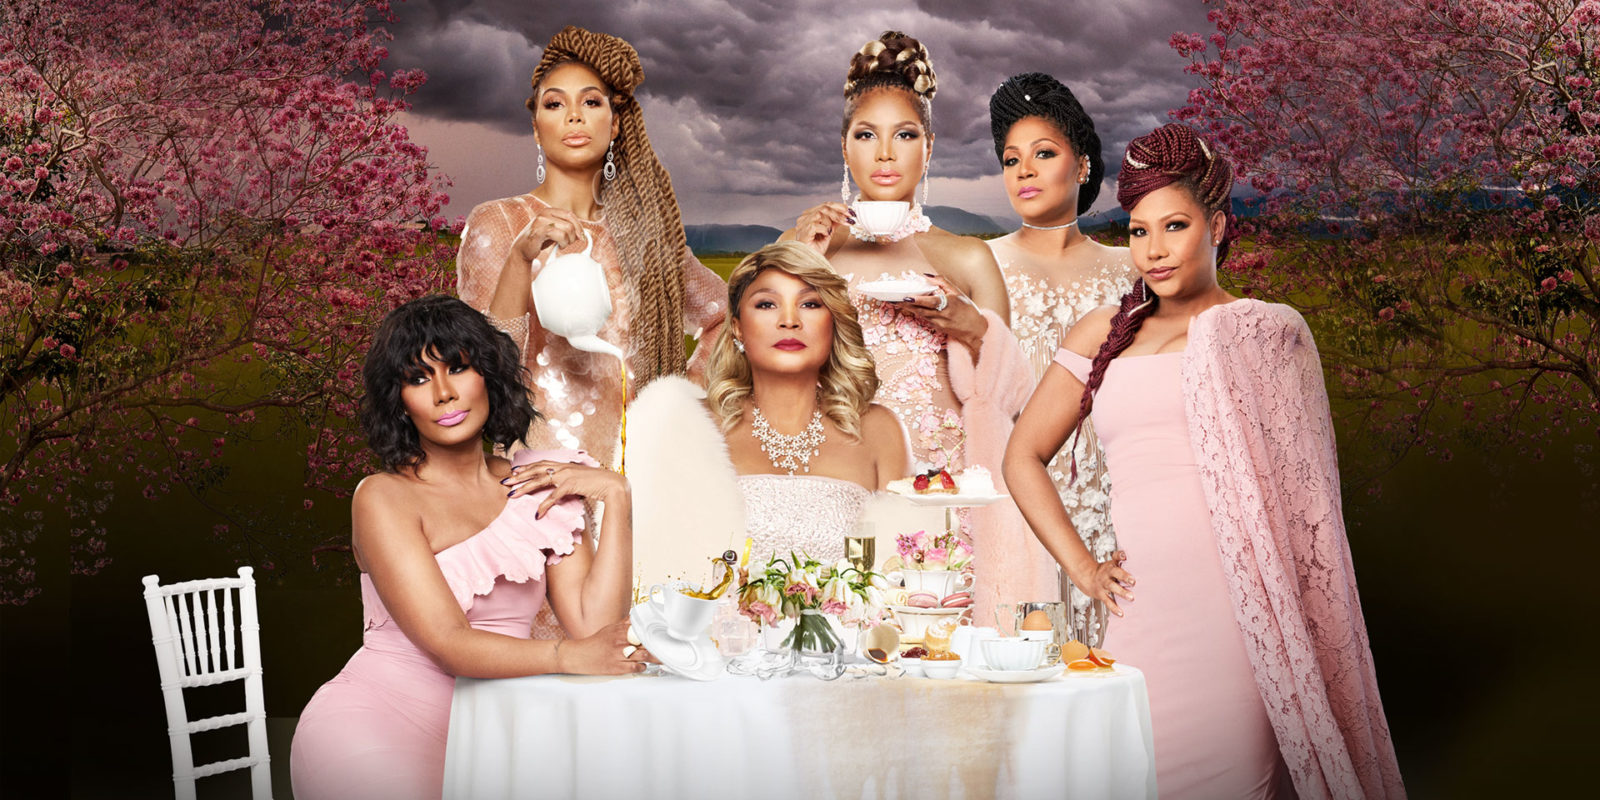 Tamar Braxton Shocks Sisters With Divorce In the Sneak Peek of 'Braxton Family Values' Sneak Peek